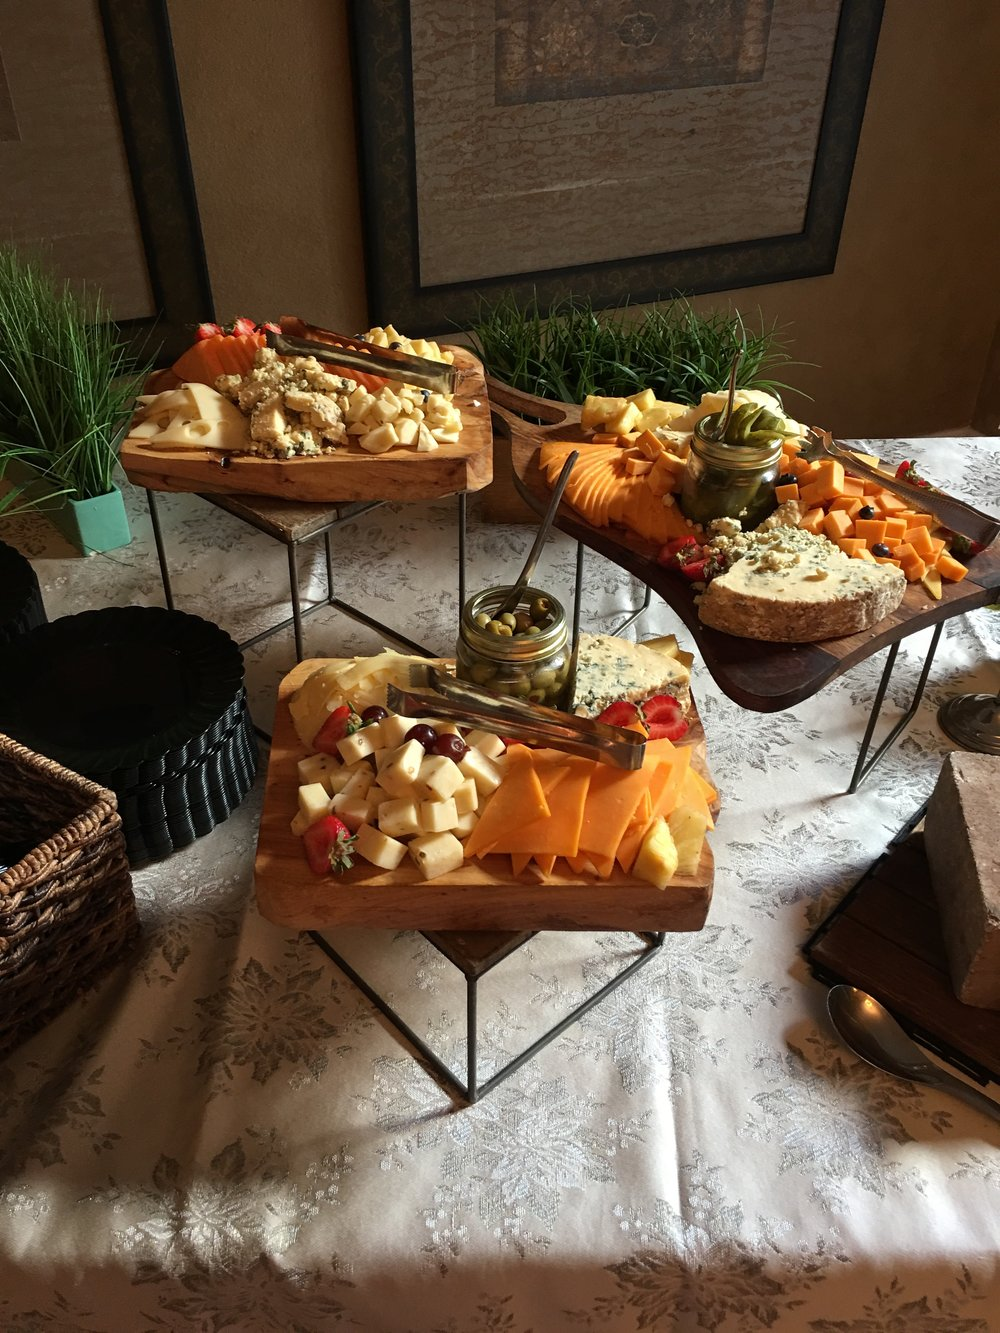 Can we just have a moment on this cheese display?  - Gil, the caterer (and my new best friend) made the most amazing food display. If I have one regret at the shower, it's that I didn't eat enough cheese.